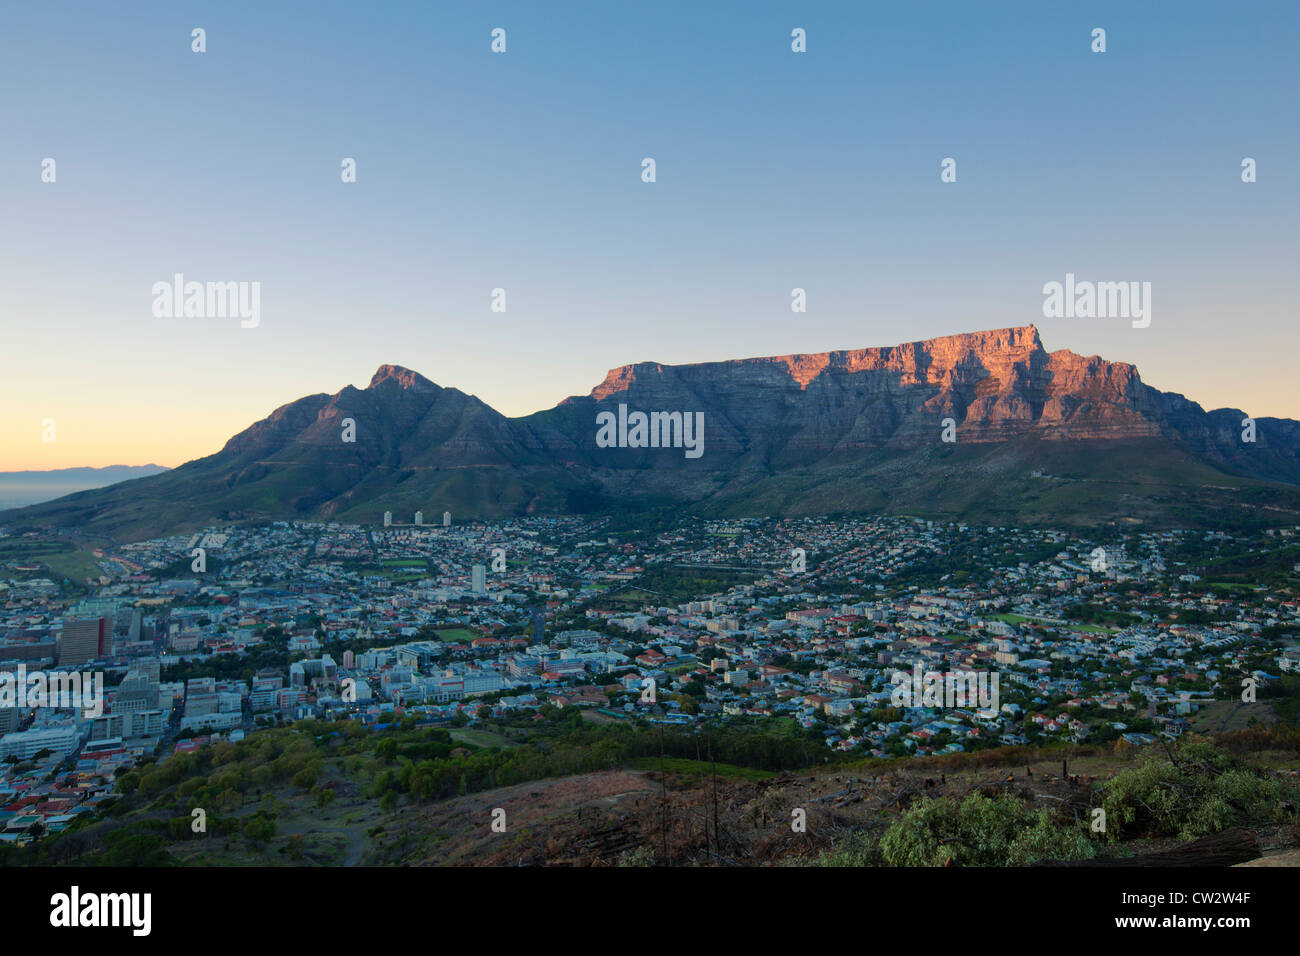 Cape Town city centre at sunrise with a view of Table Mountain. Cape Town,South Africa - Stock Image